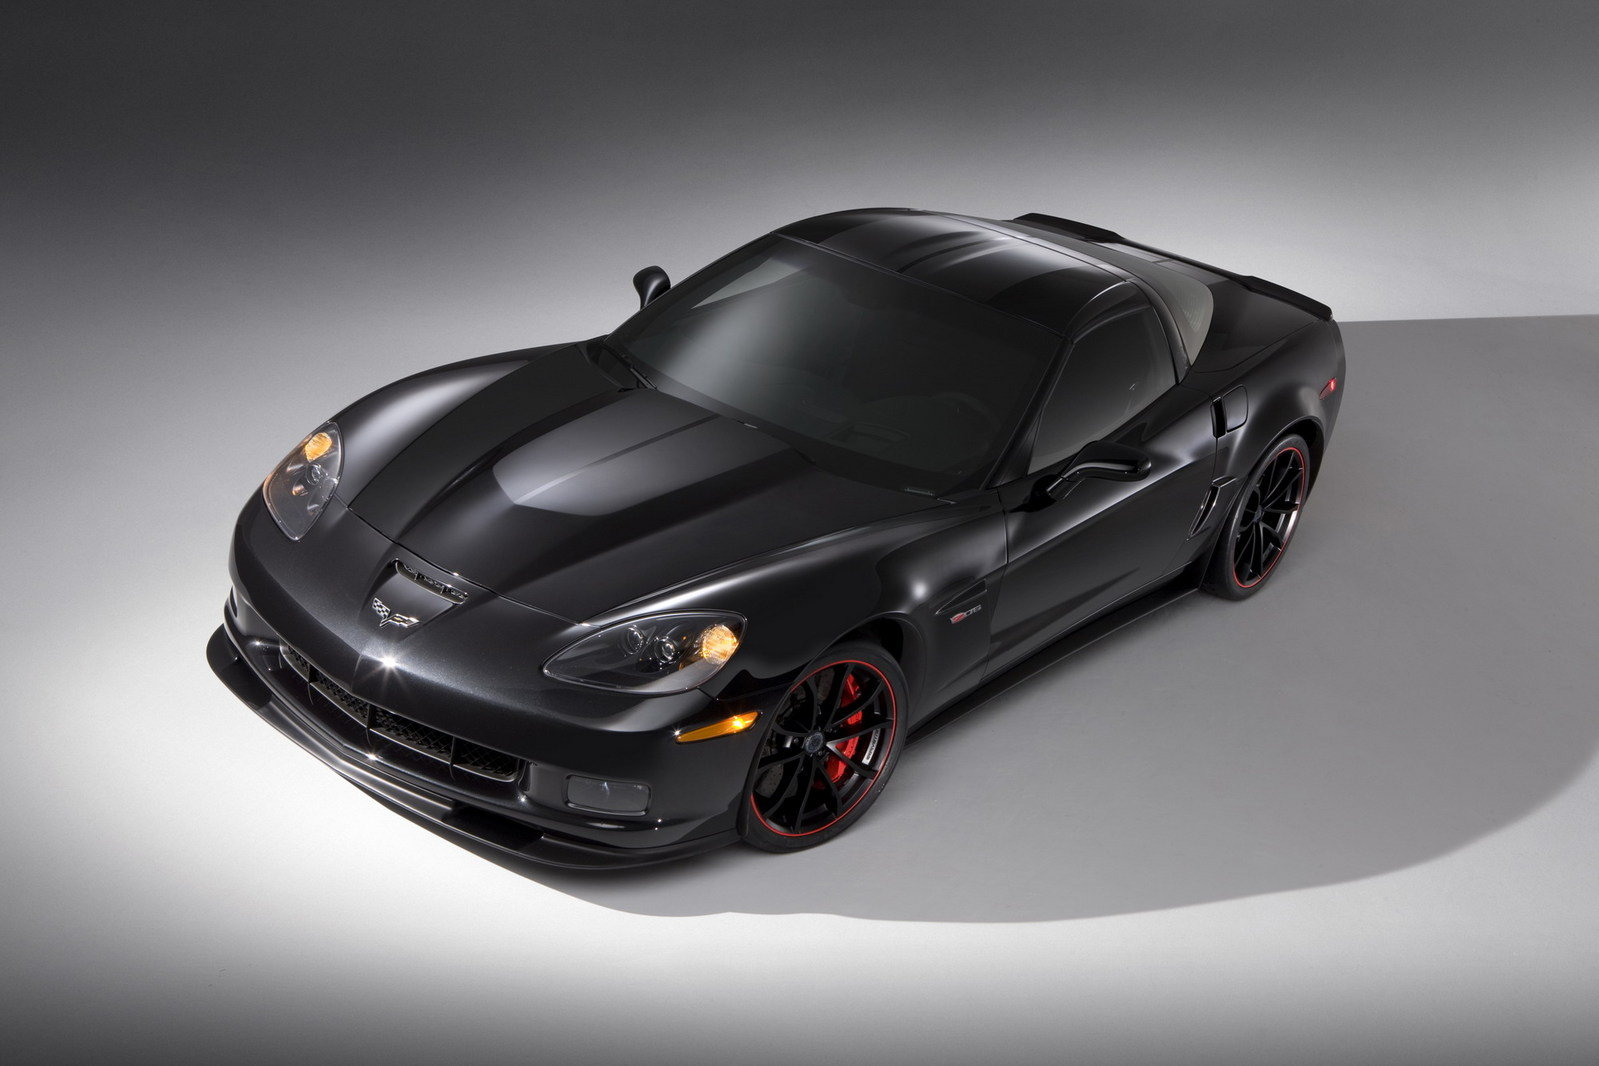 All Chevy chevy cars 2012 : 2012 Chevrolet Corvette Review - Top Speed